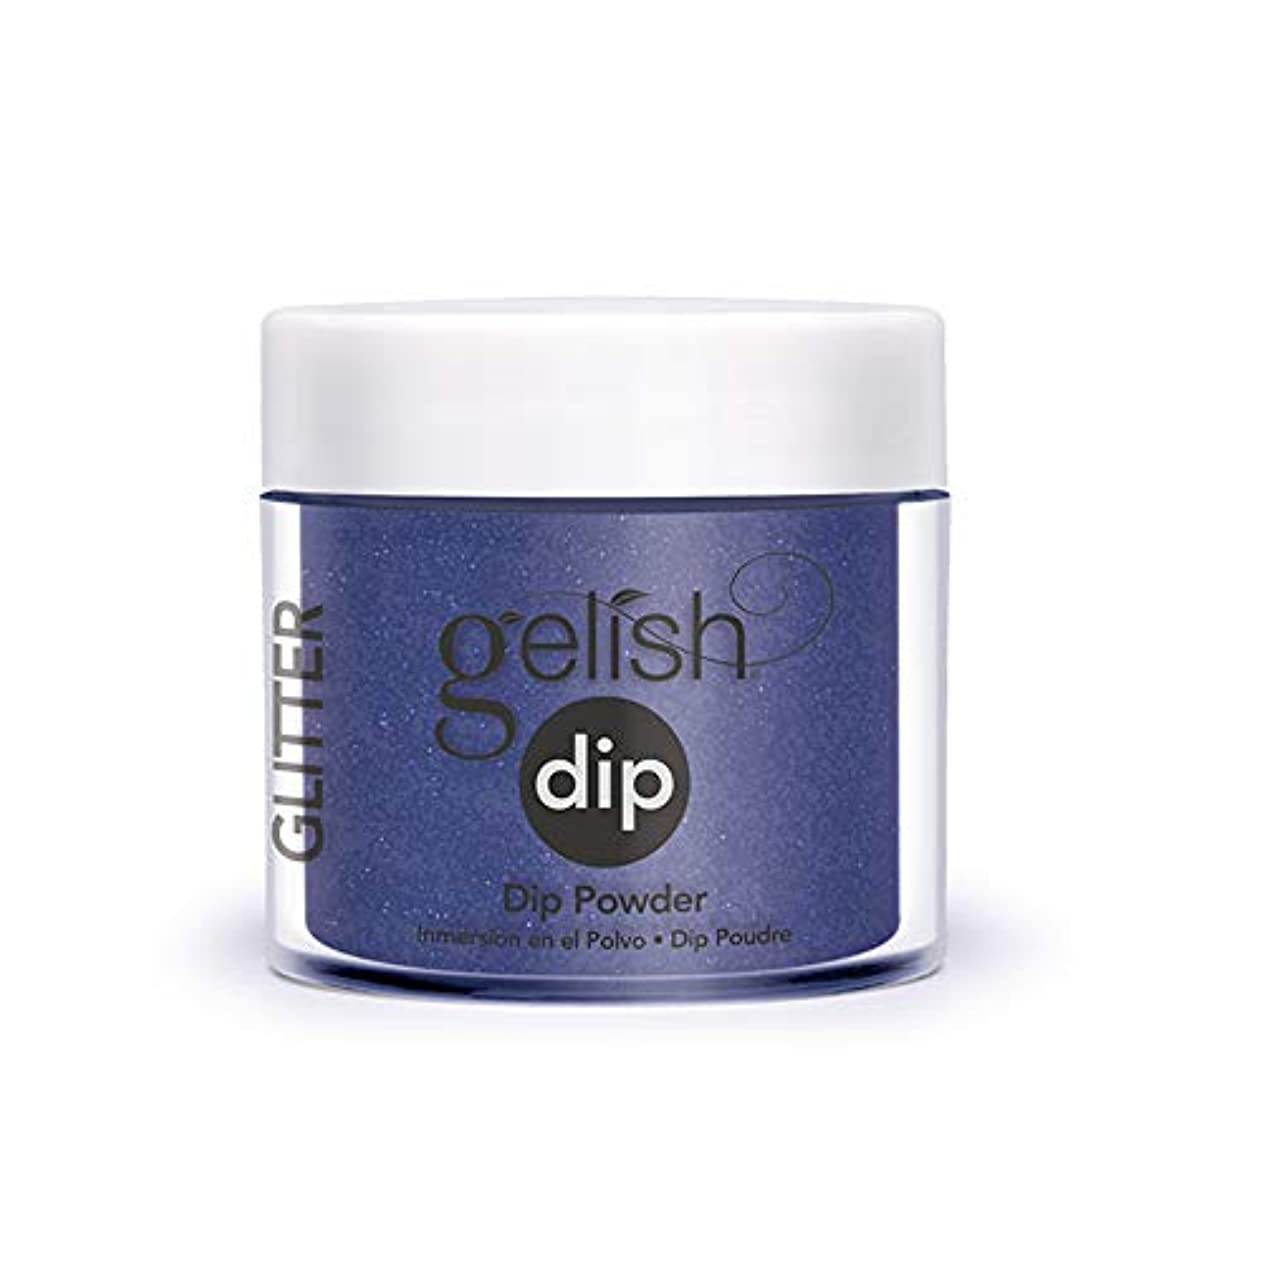 郵便悔い改め自分Harmony Gelish - Acrylic Dip Powder - Under the Stars - 23g / 0.8oz